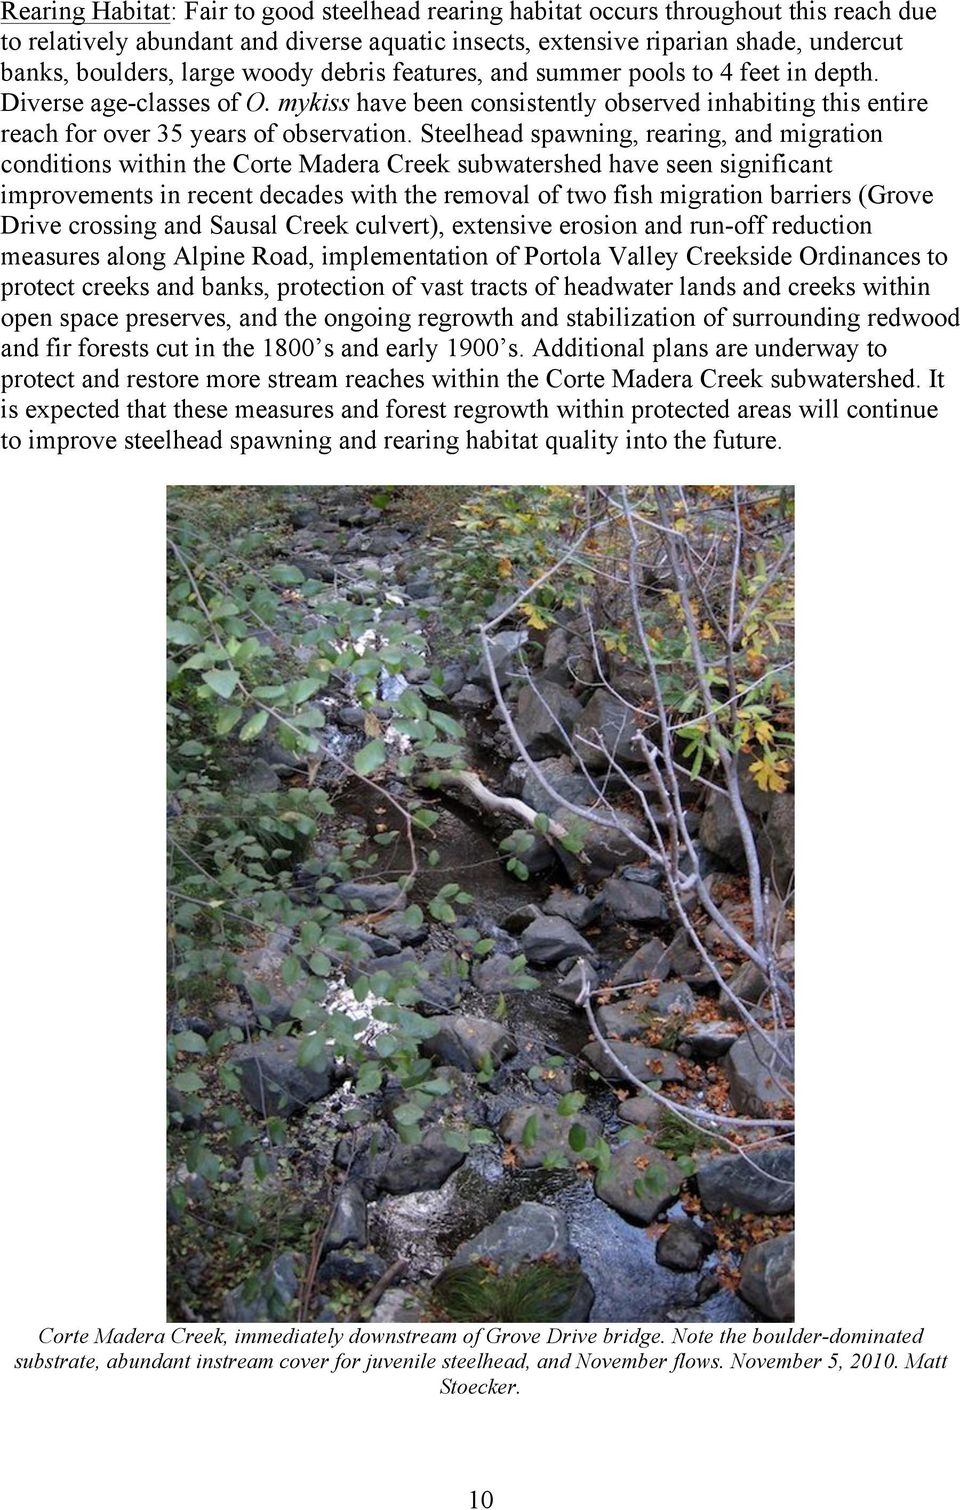 Steelhead spawning, rearing, and migration conditions within the Corte Madera Creek subwatershed have seen significant improvements in recent decades with the removal of two fish migration barriers